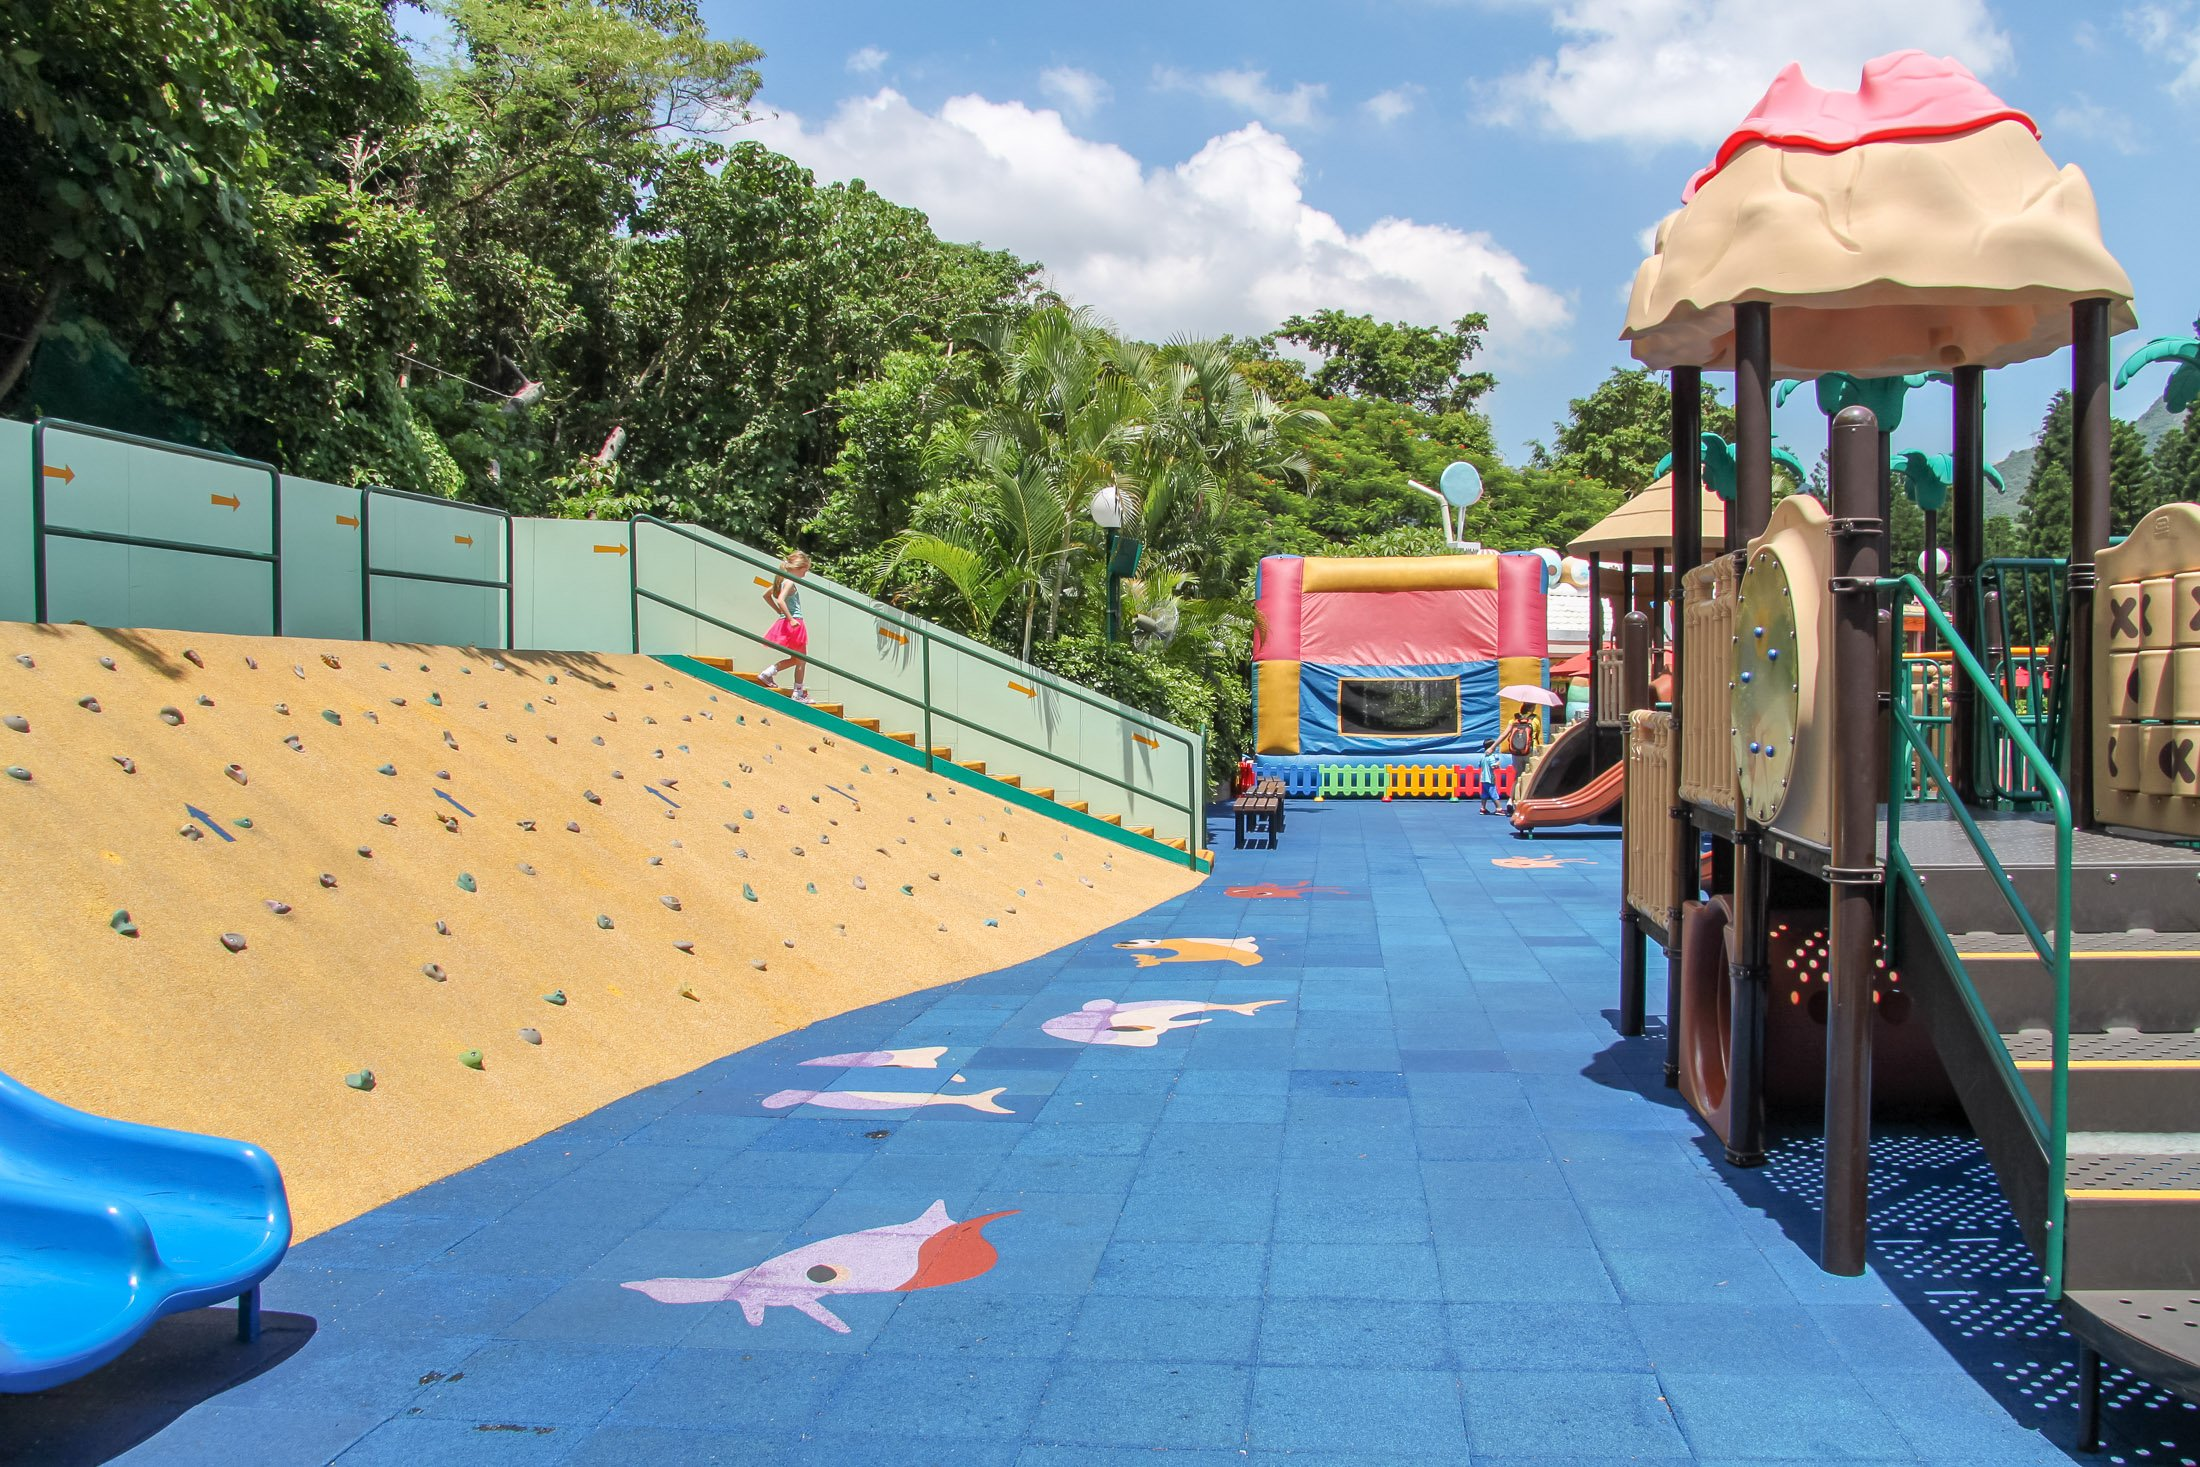 Whiskers Harbour playground at Ocean Park Hong Kong